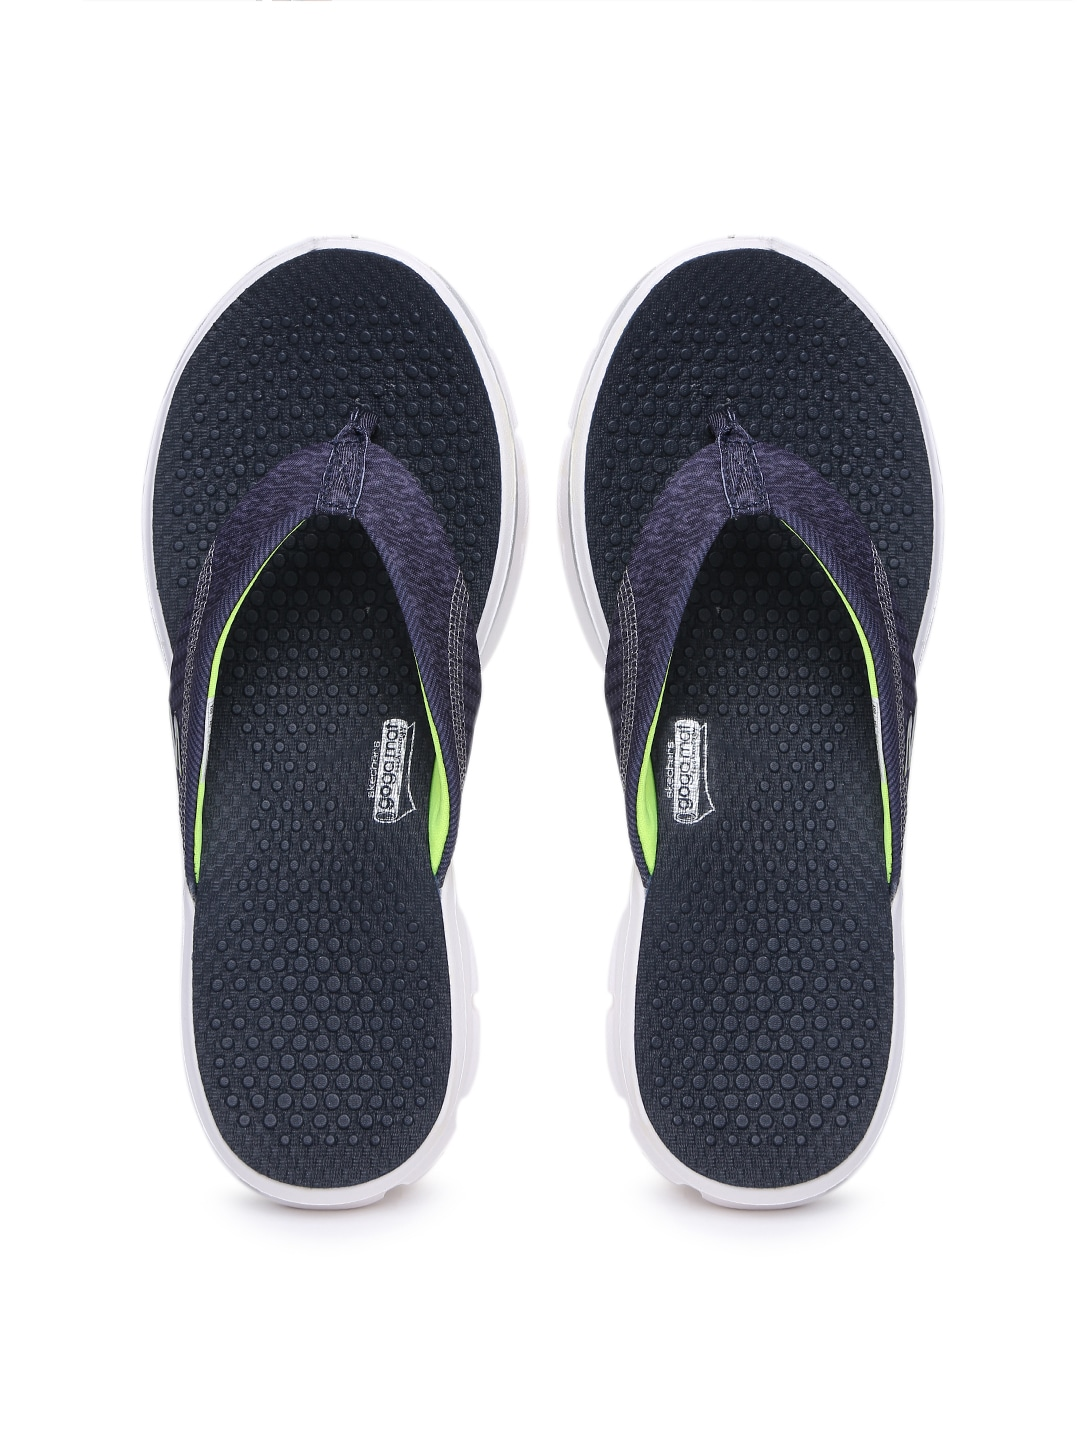 b8d57a6020c2 Skechers 14250-nvw Women Navy Go Walk Pizazz Flip Flops- Price in India